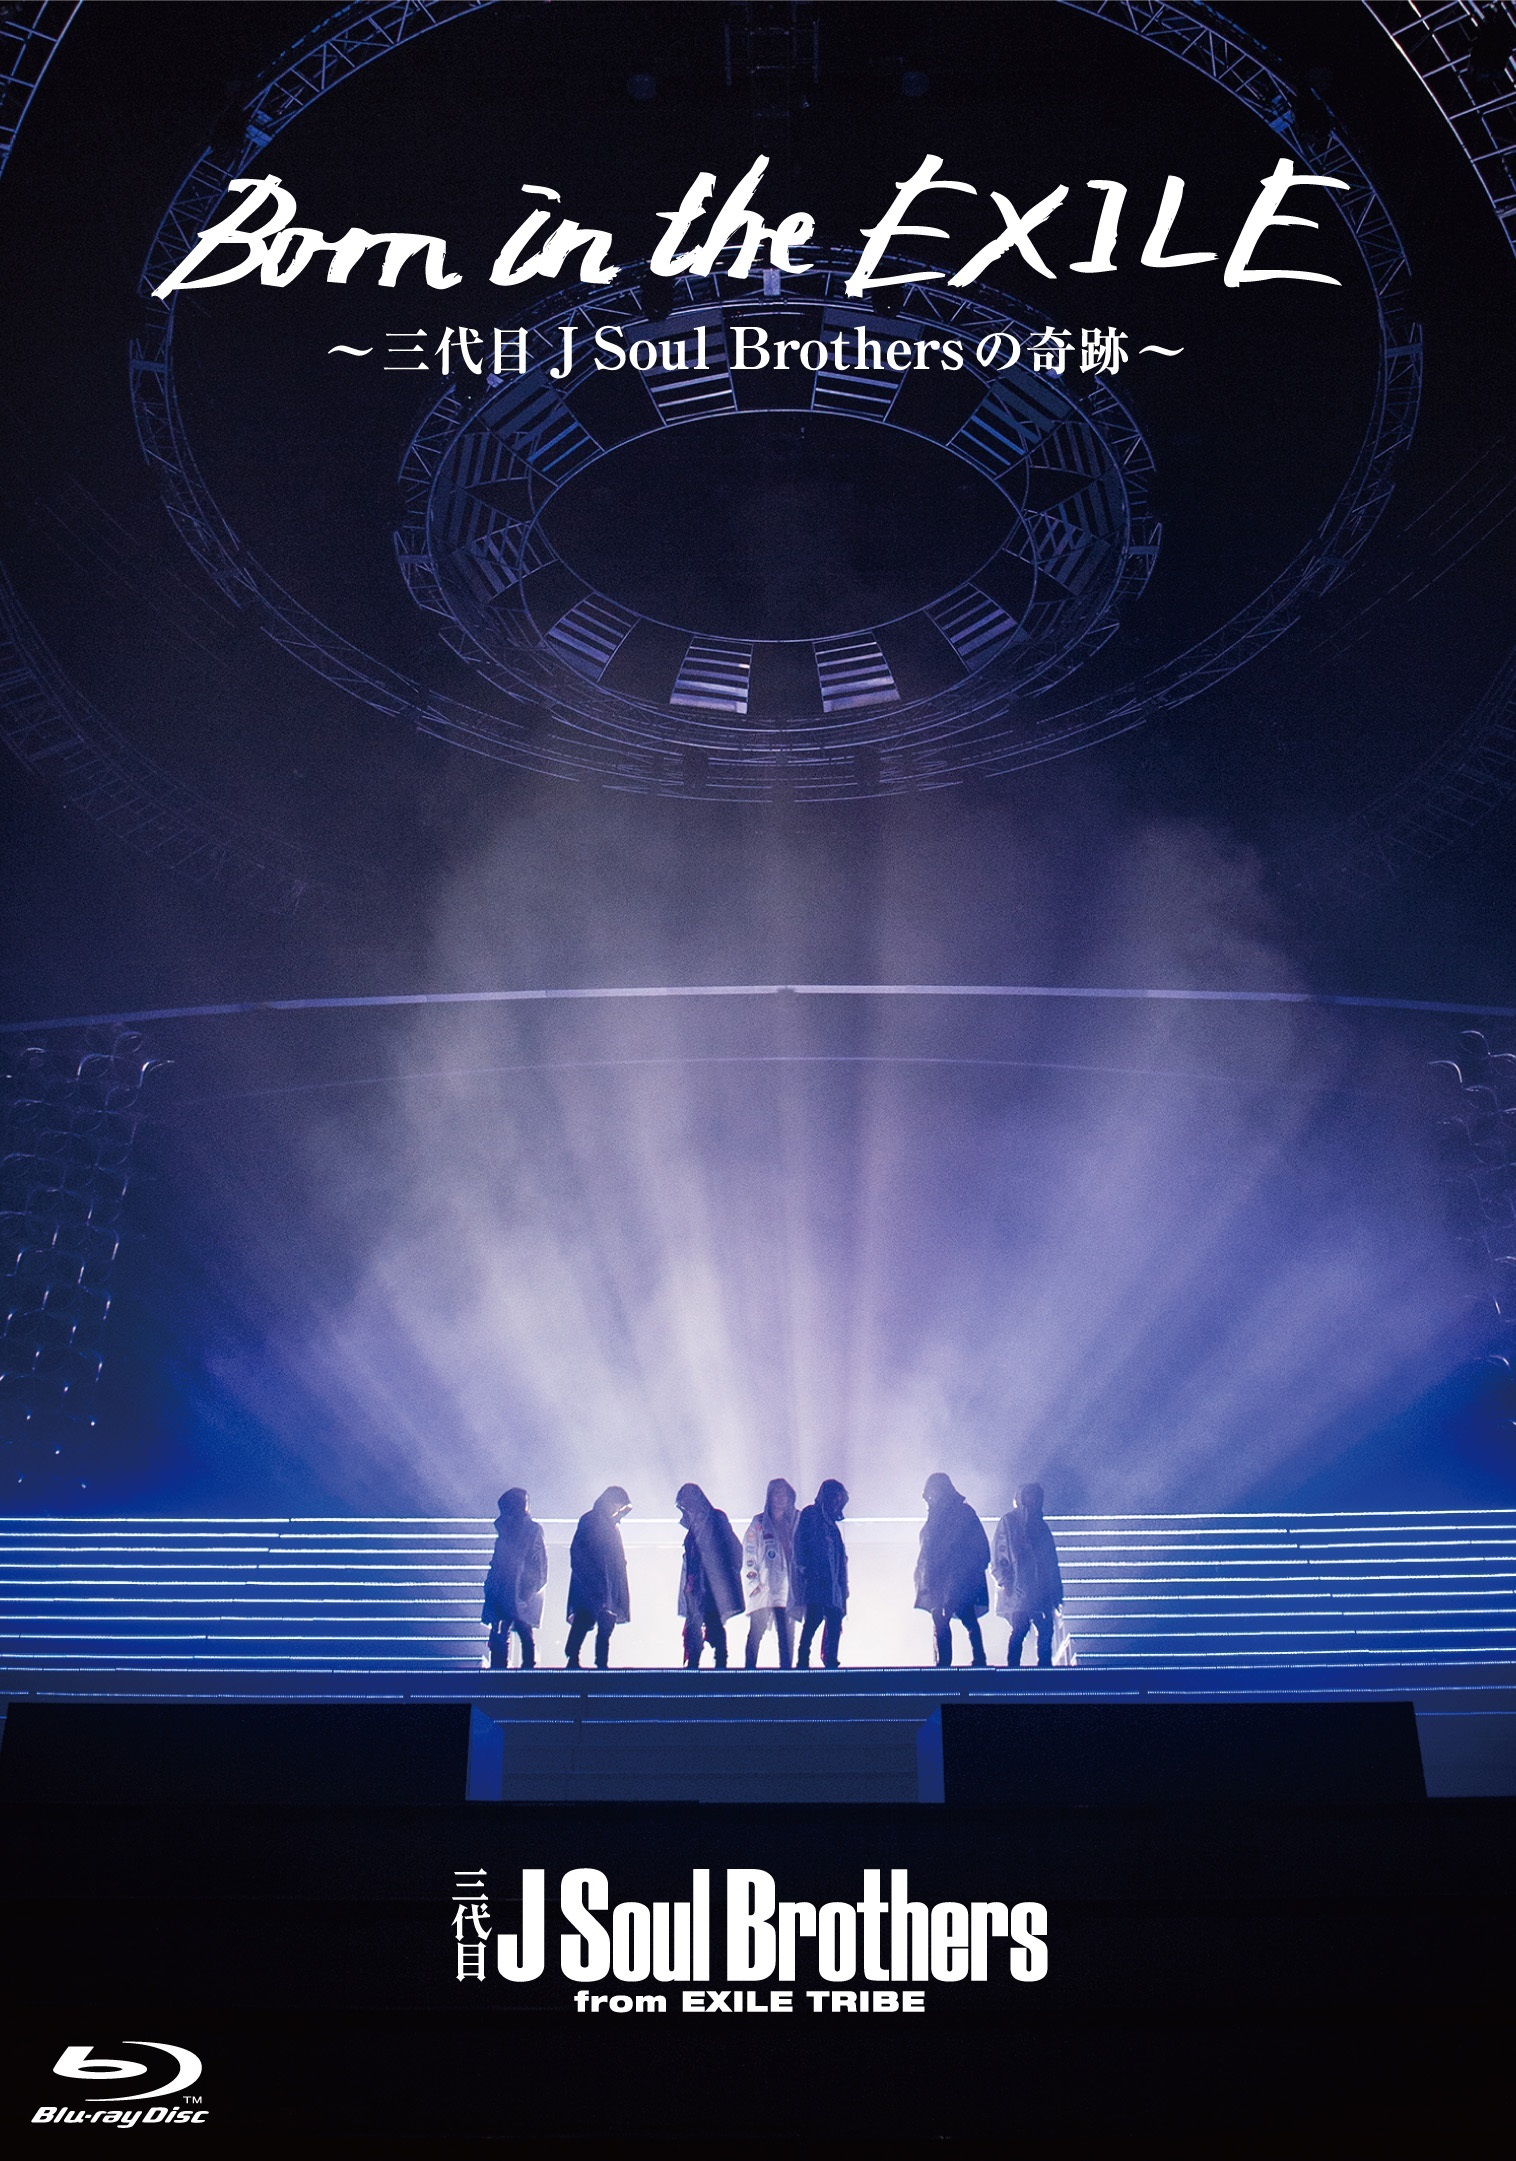 『Born in the EXILE ~三代目 J Soul Brothersの奇跡~』初回生産限定版Blu-ray